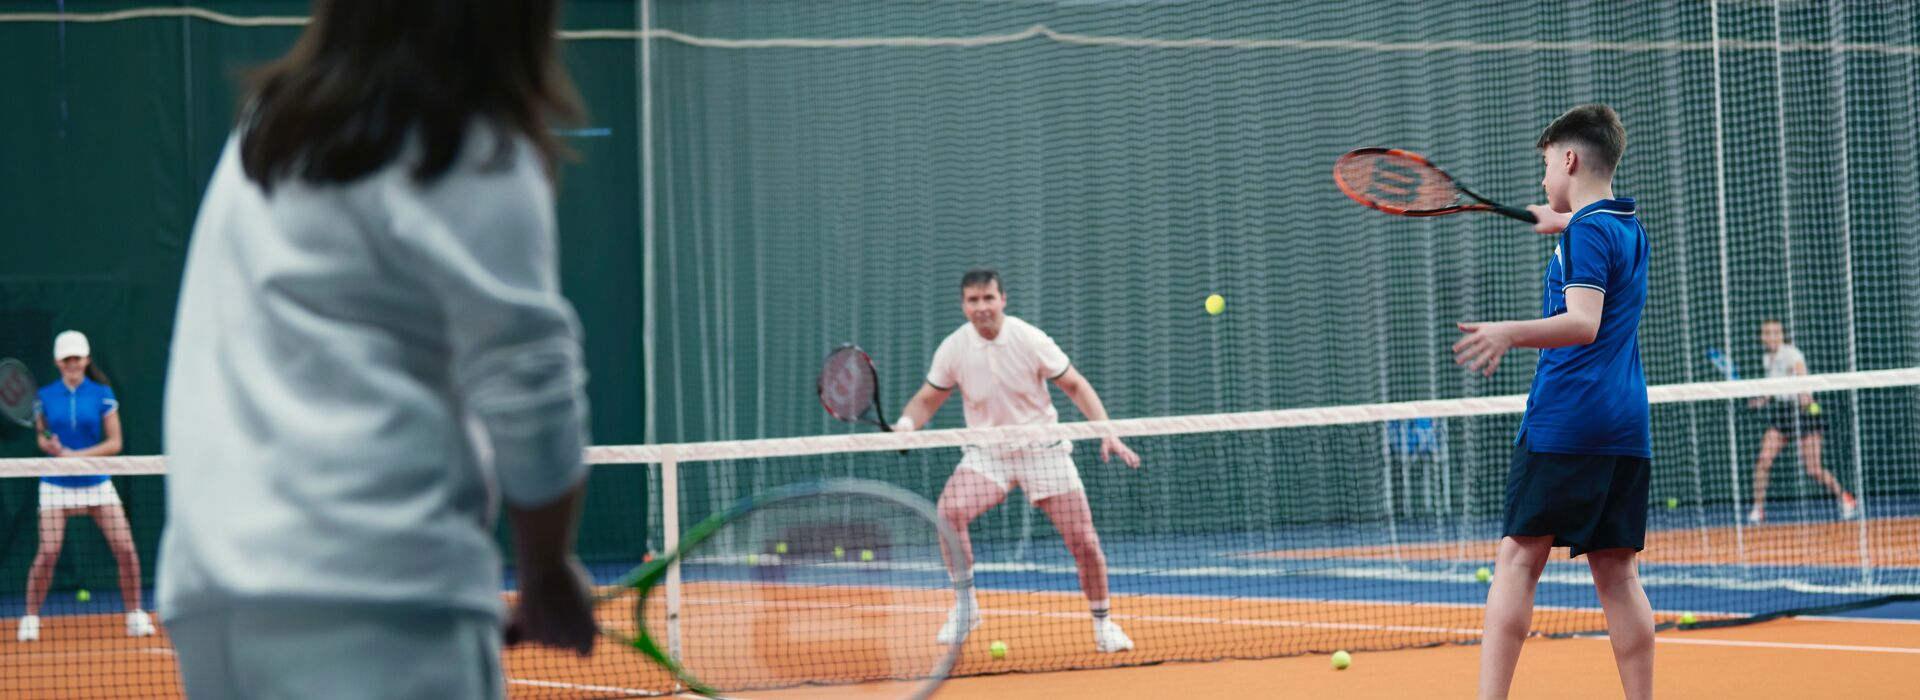 Tennis at David Lloyd